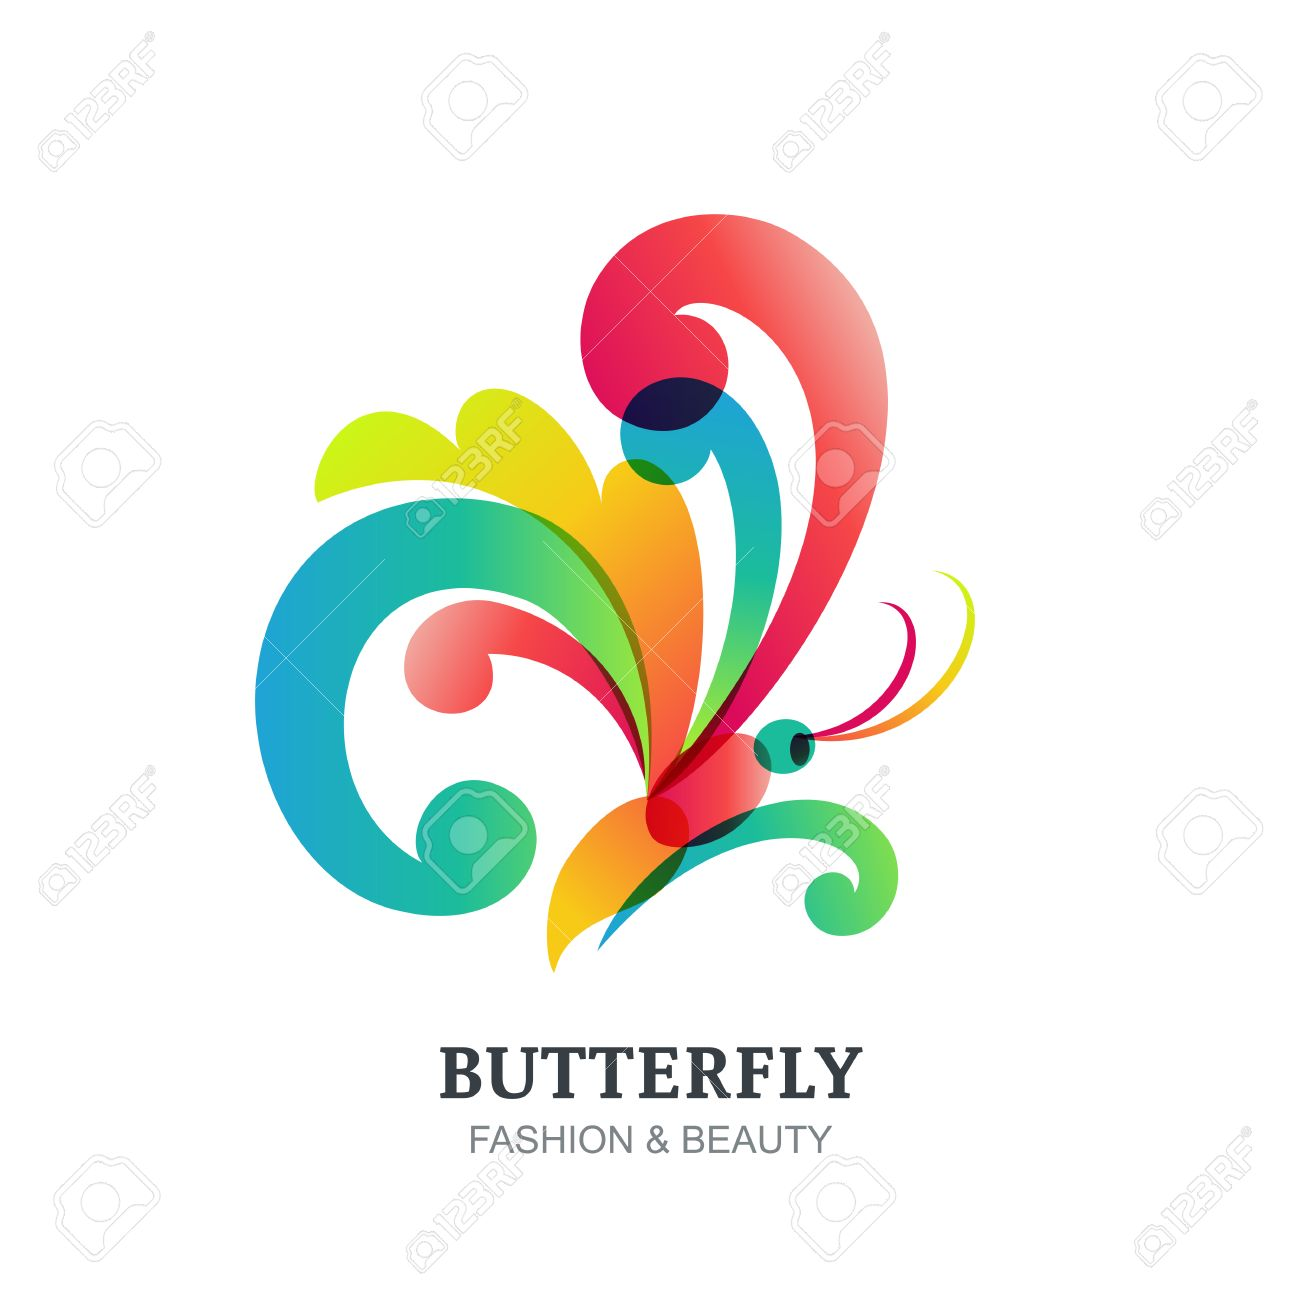 Vector Illustration Of Colorful Transparent Butterfly Abstract Creative Logo Sign Design Modern Concept For